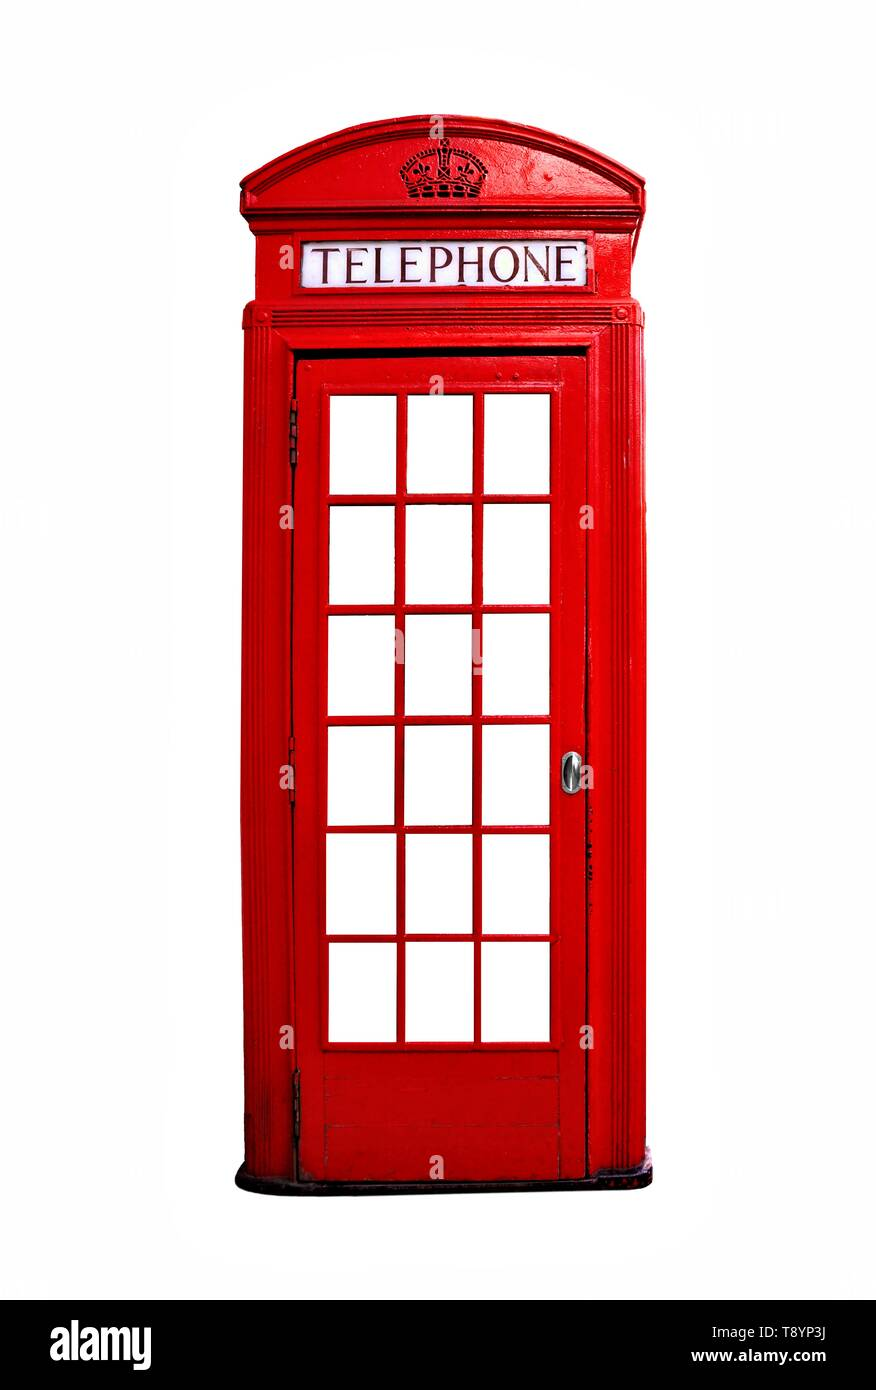 Iconic red British telephone booth isolated on a white background - Stock Image